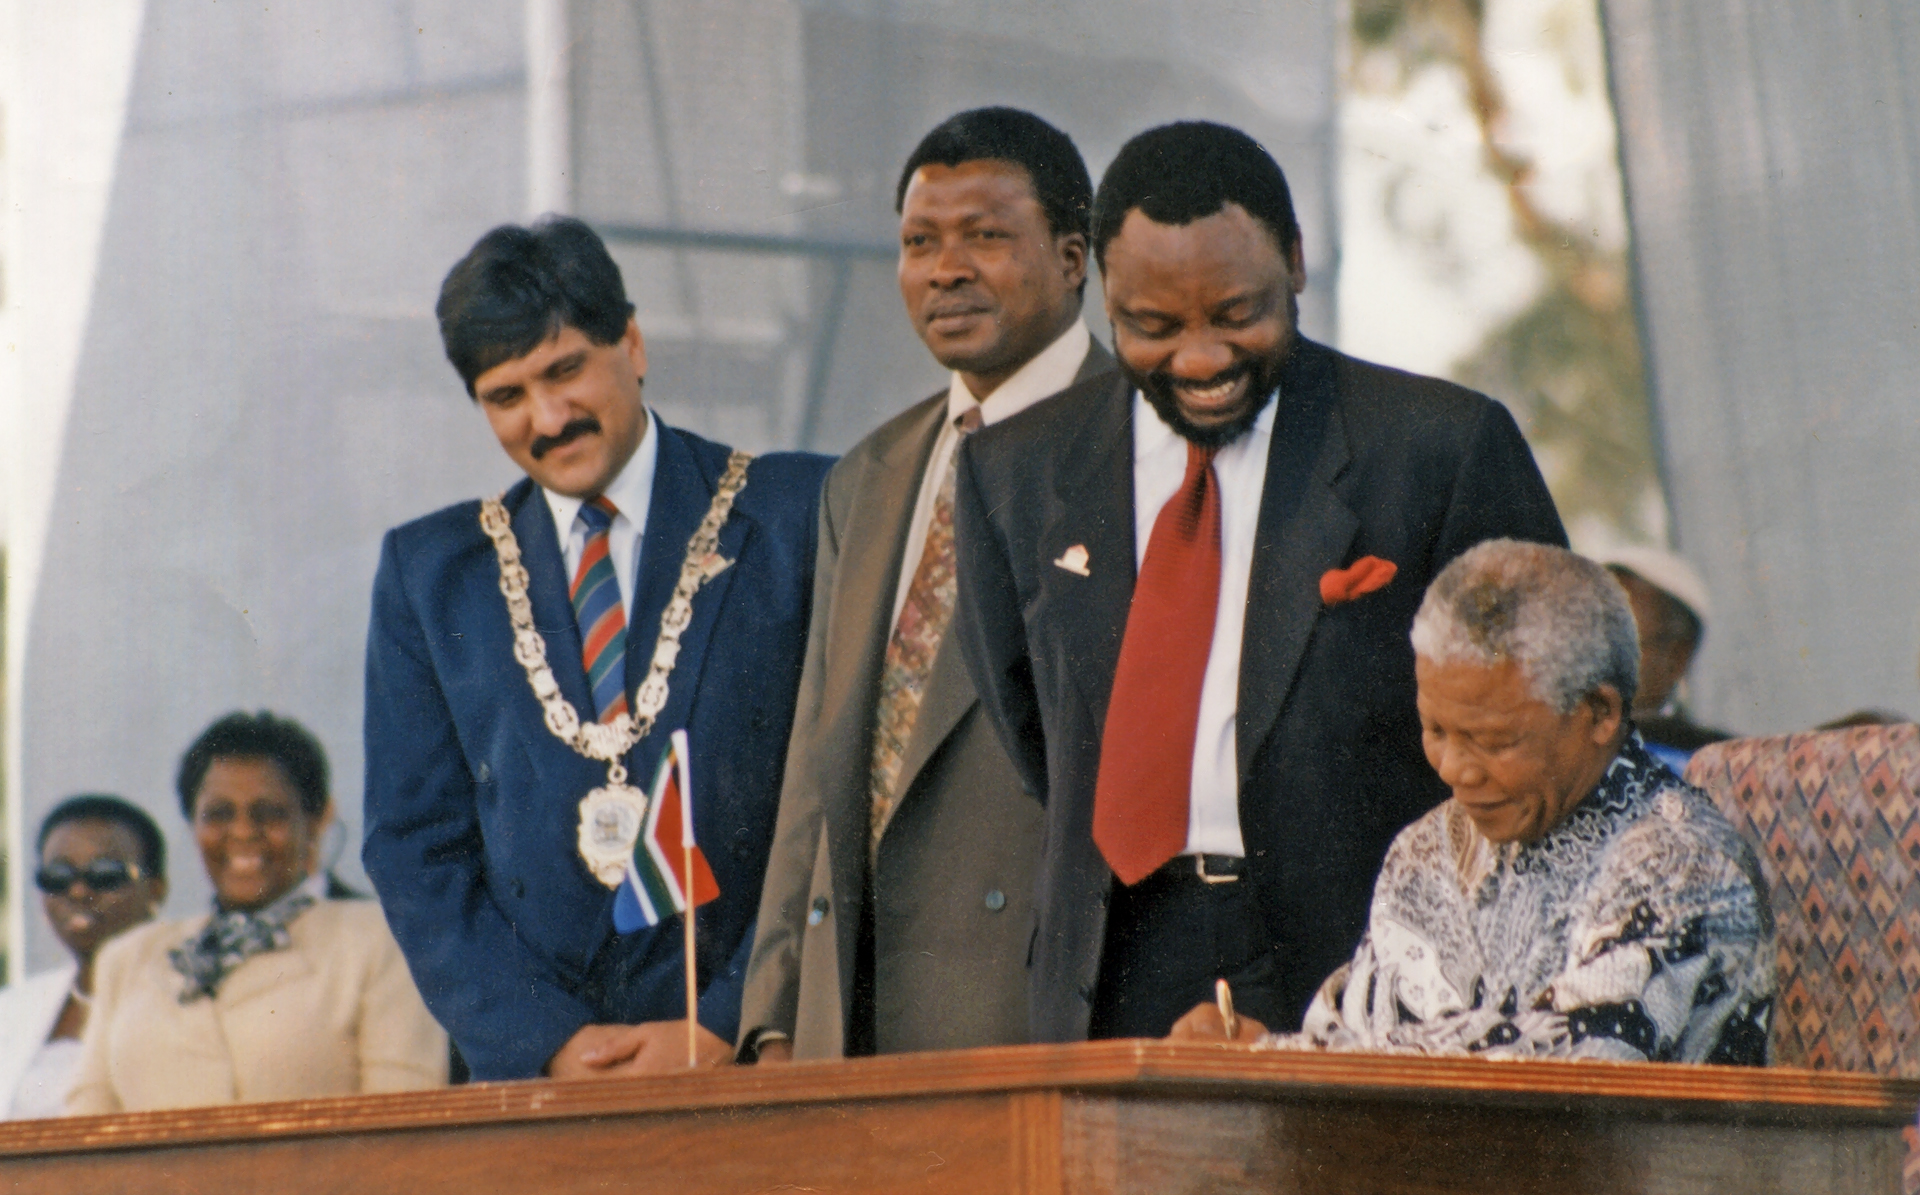 10 December 1996, South Africa's first democratic Constitution is signed into law by President Nelson Mandela at Sharpeville, Vereeniging.